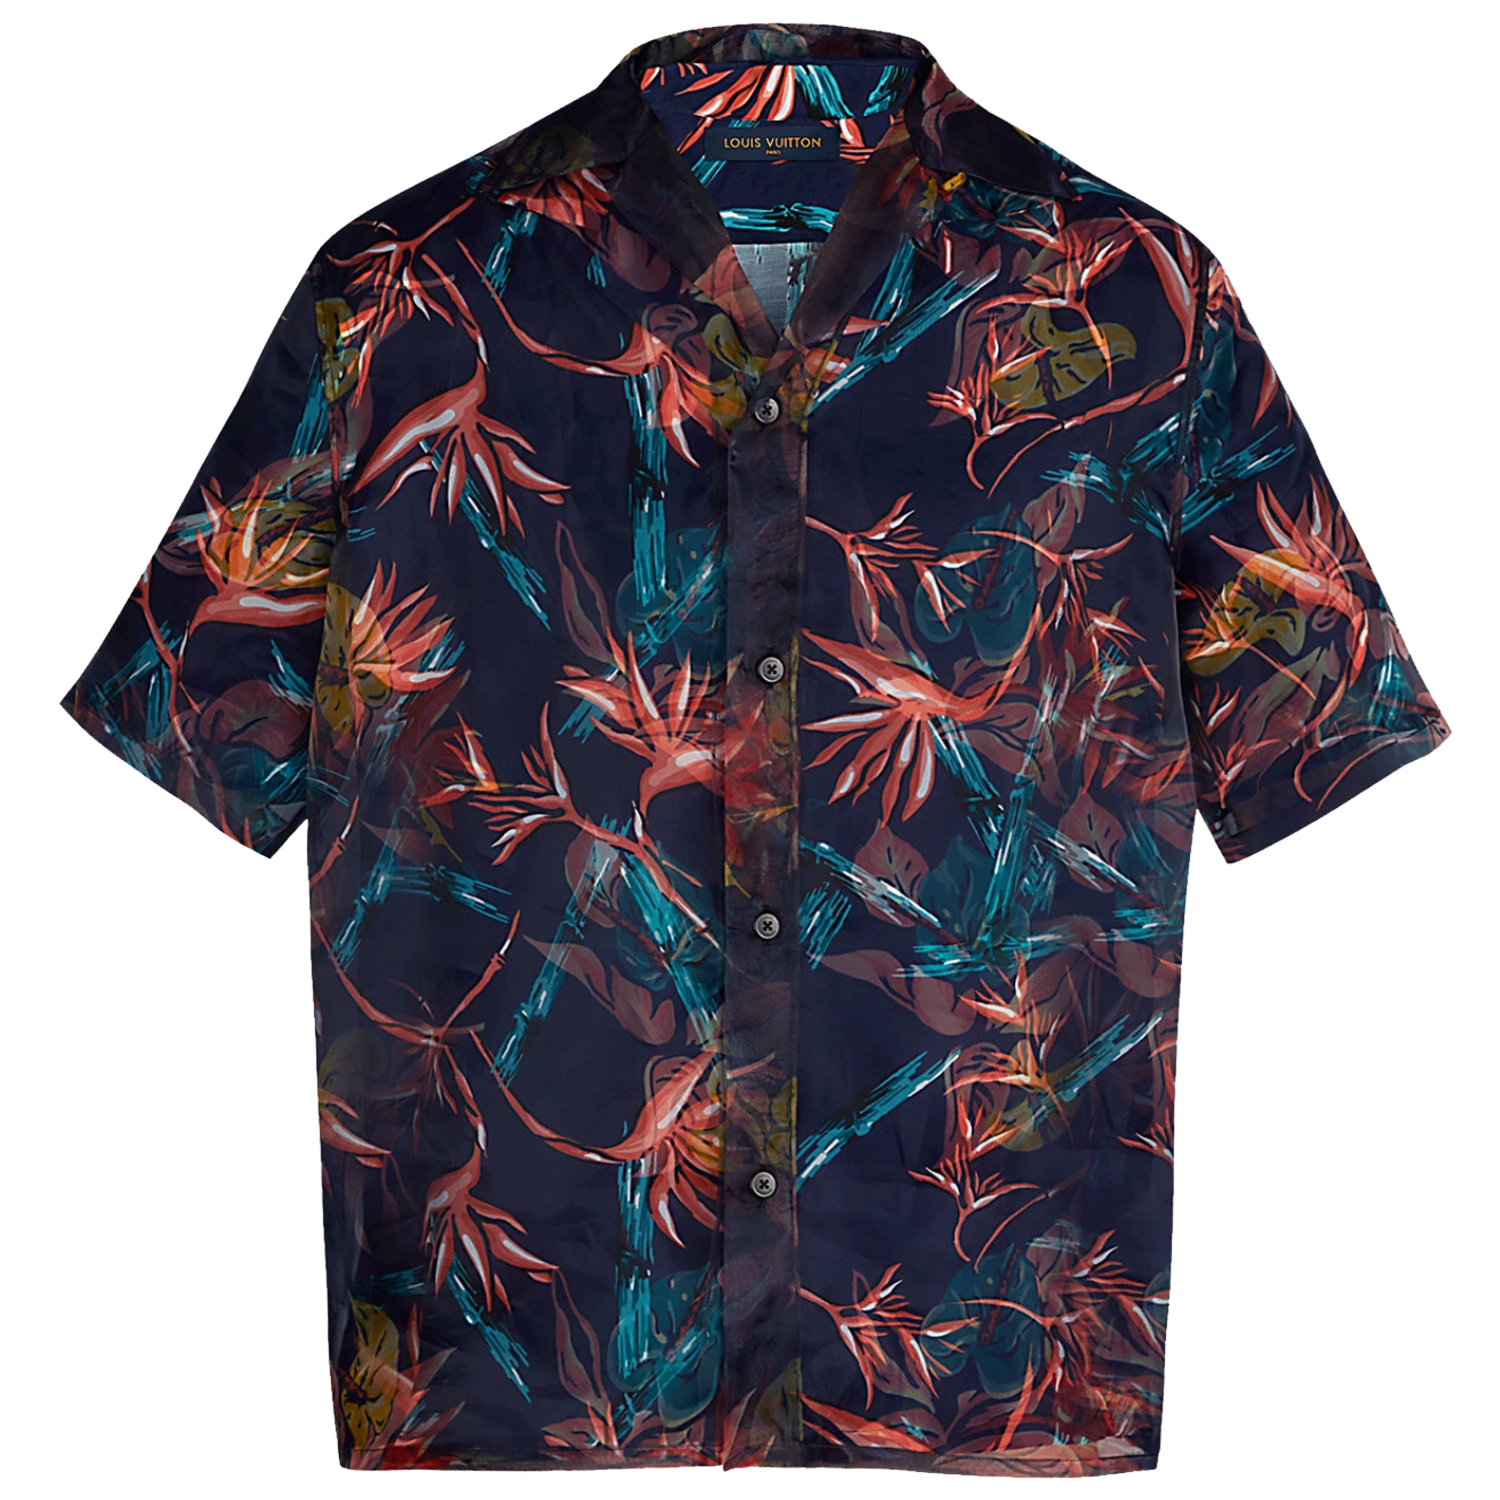 BAMBOO DOUBLE LAYER SHIRT - €1490 $19901A413SMARINE